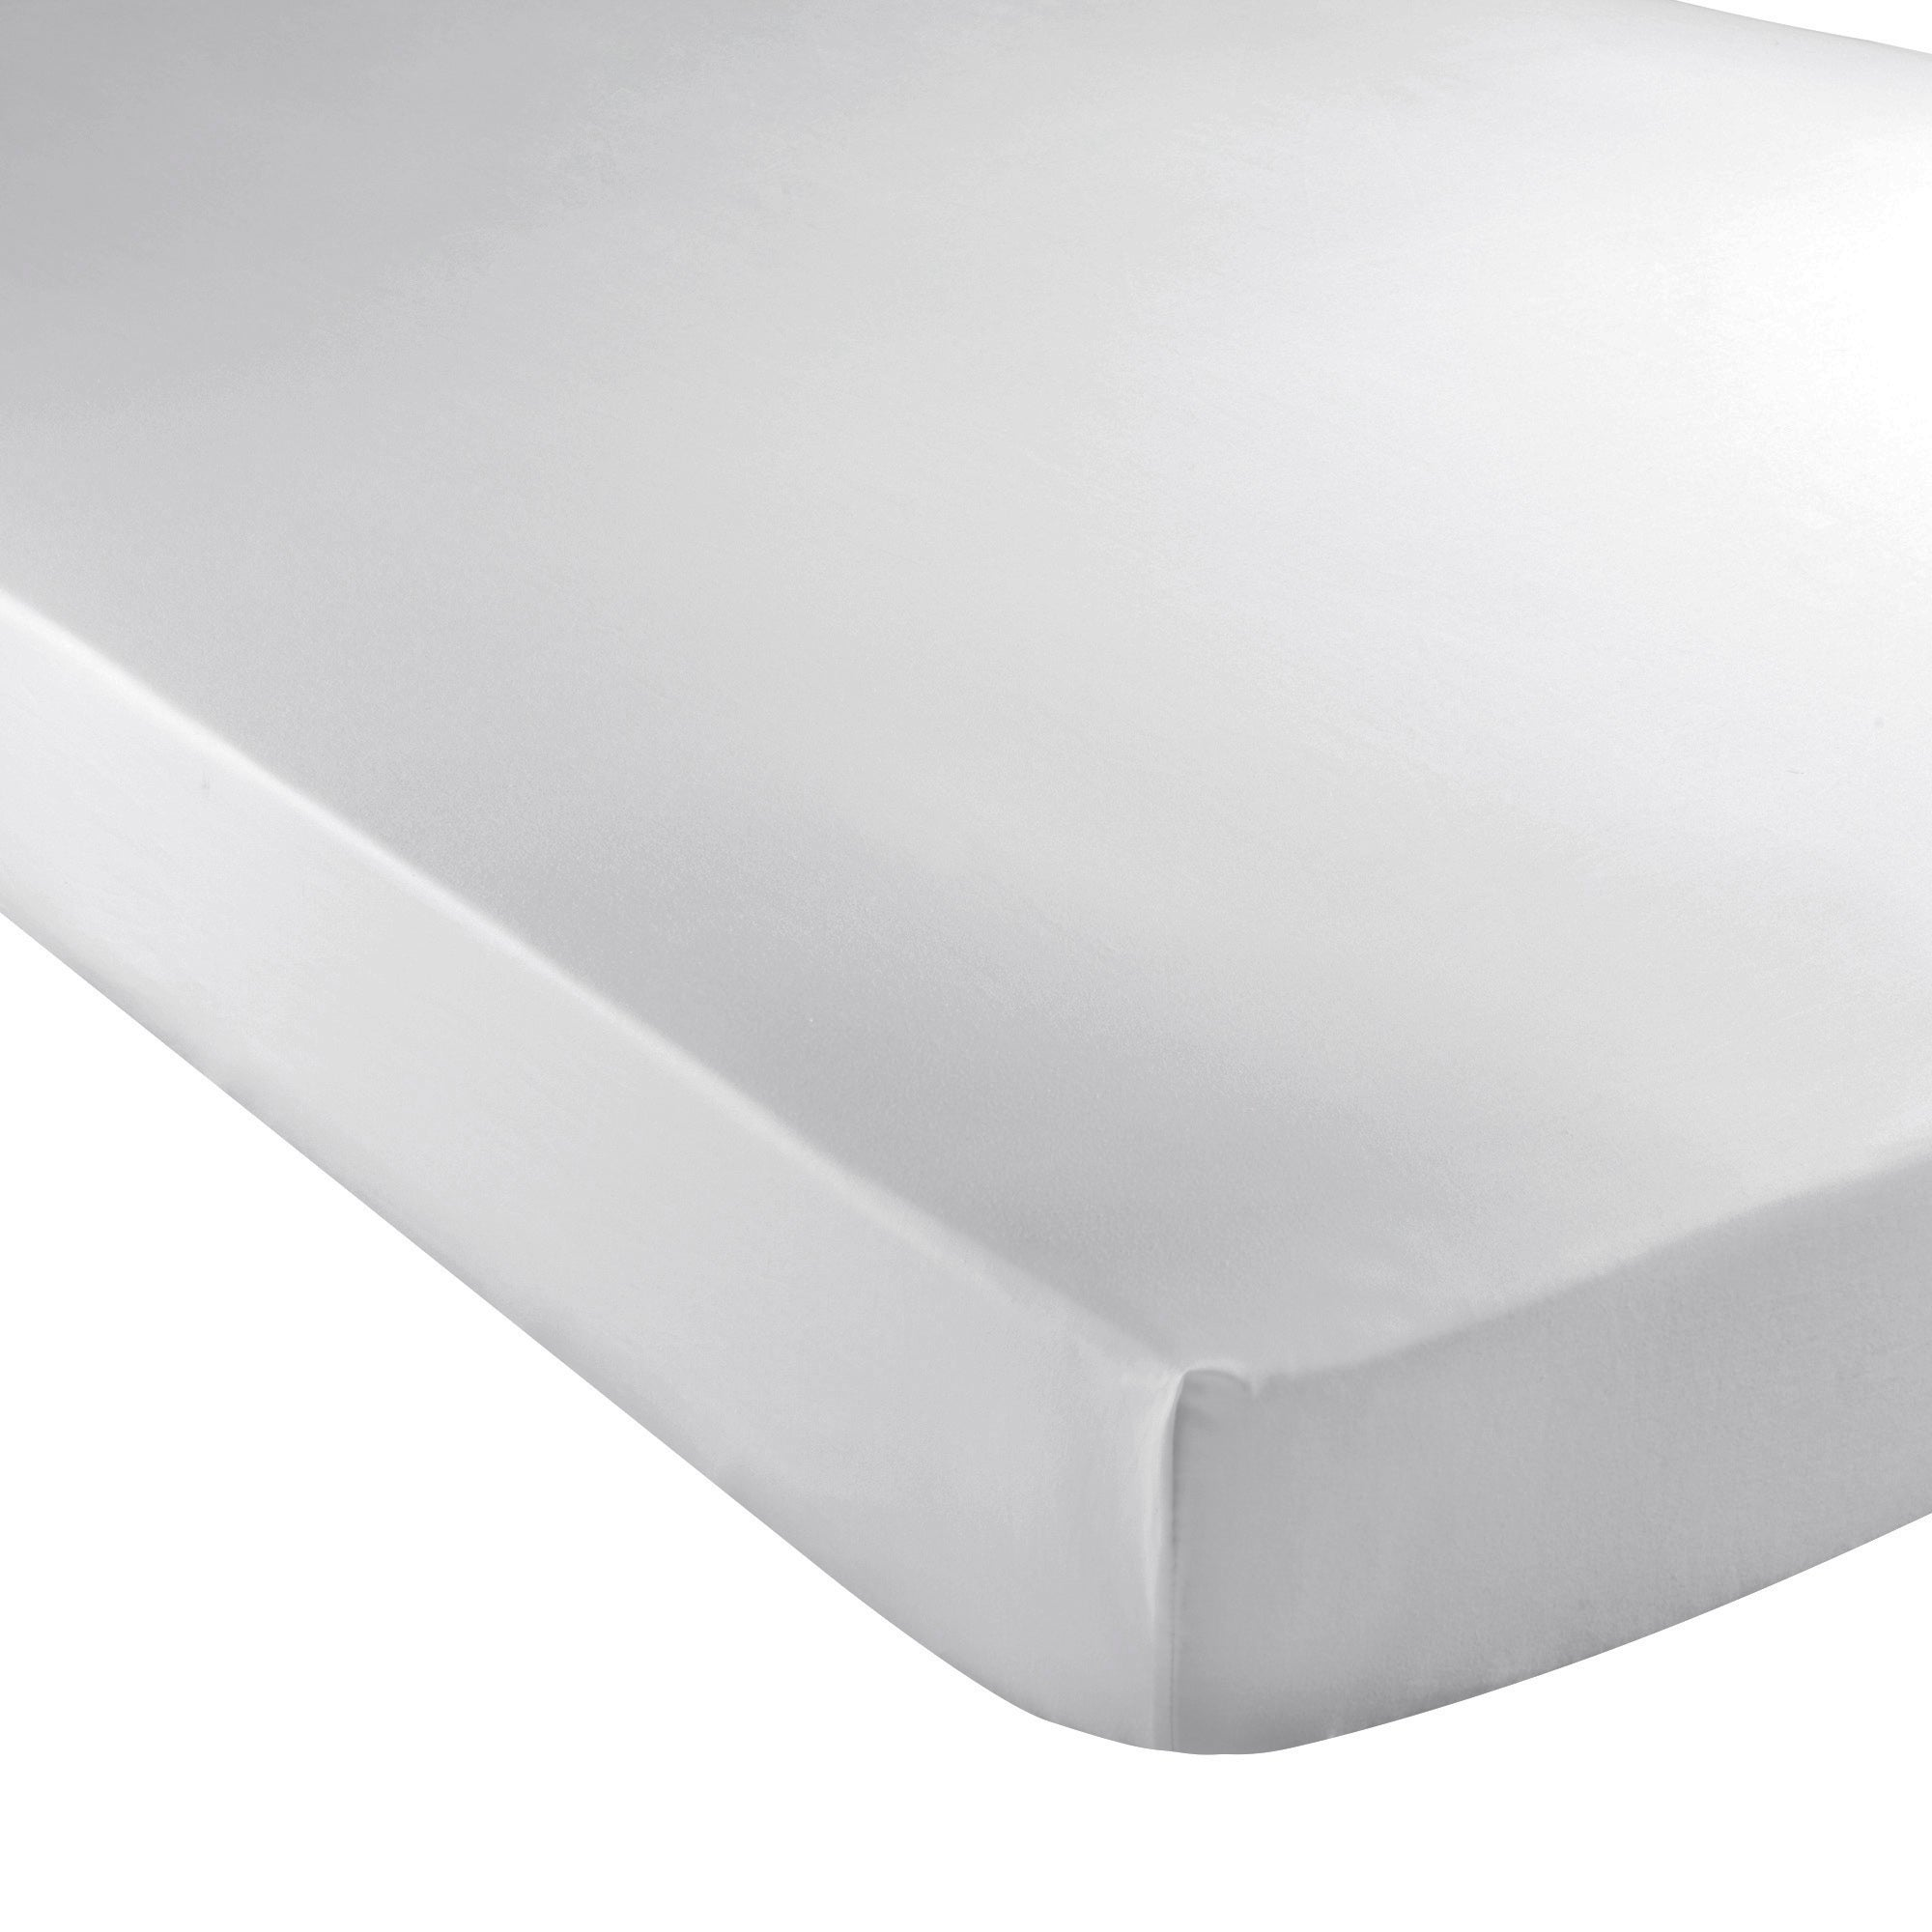 Image of Hotel 300 Thread Count 28cm Silver Fitted Sheet Silver (Grey)